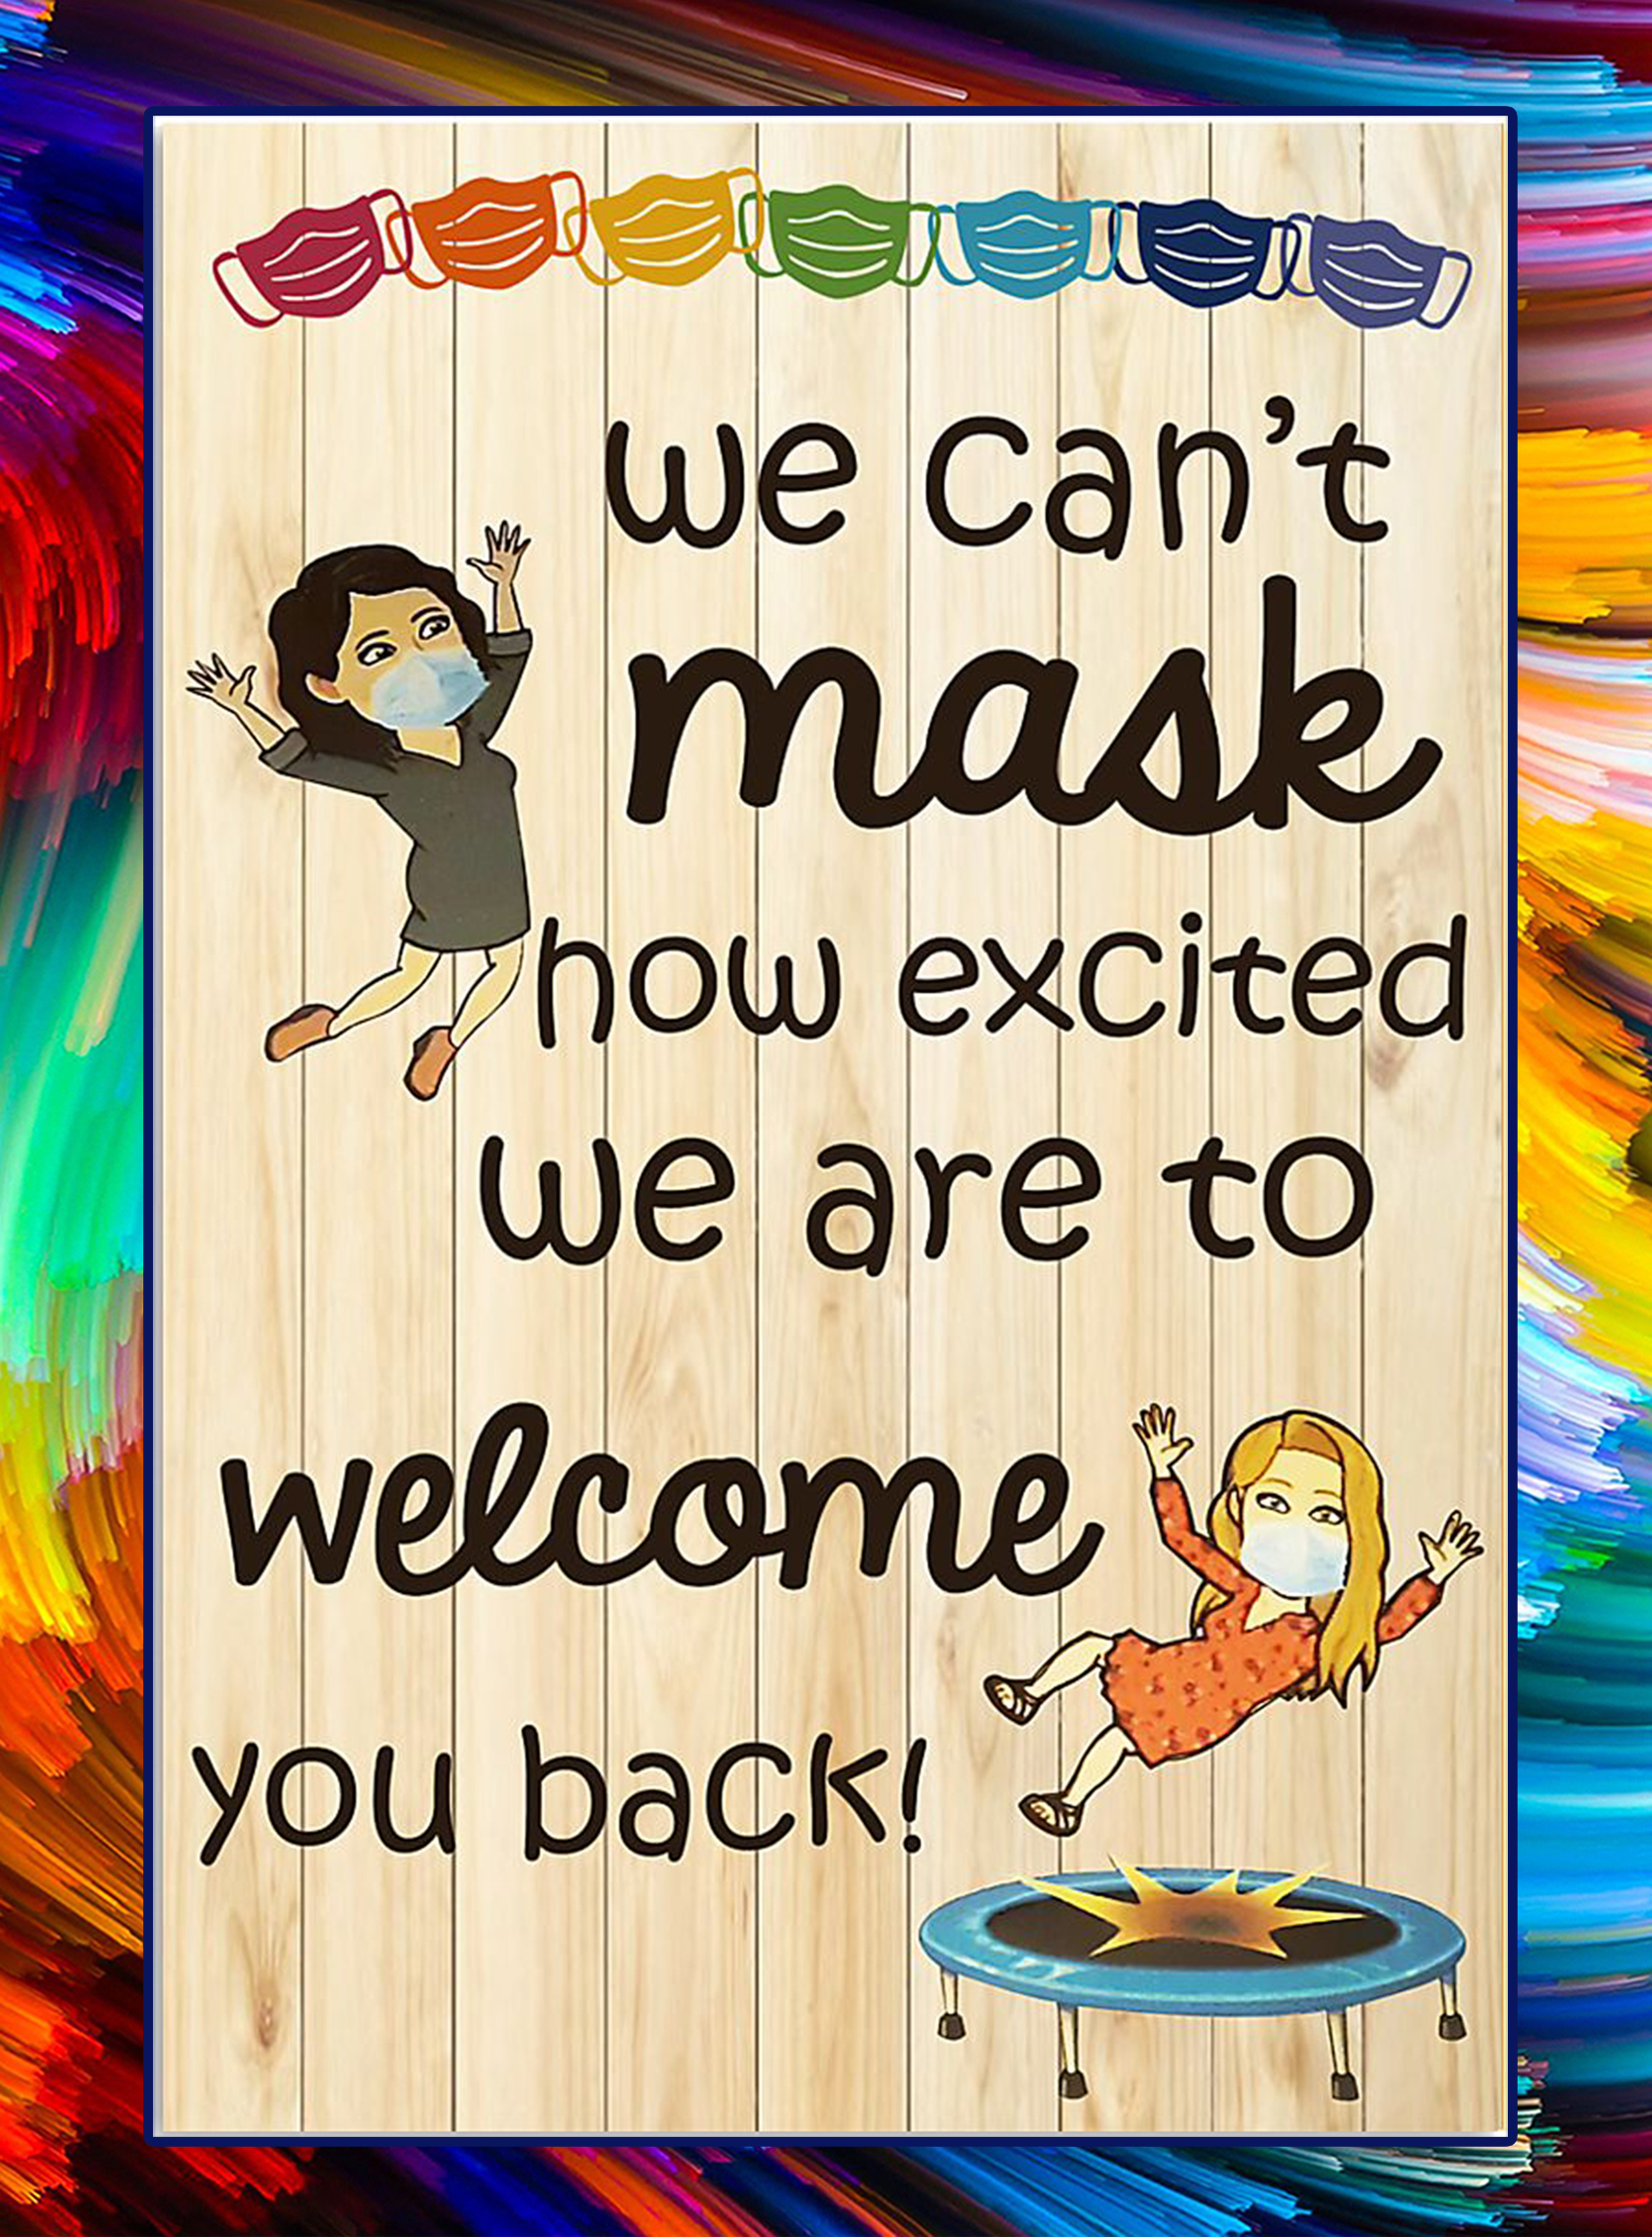 We can't mask how excited we are to welcome you back poster - A2